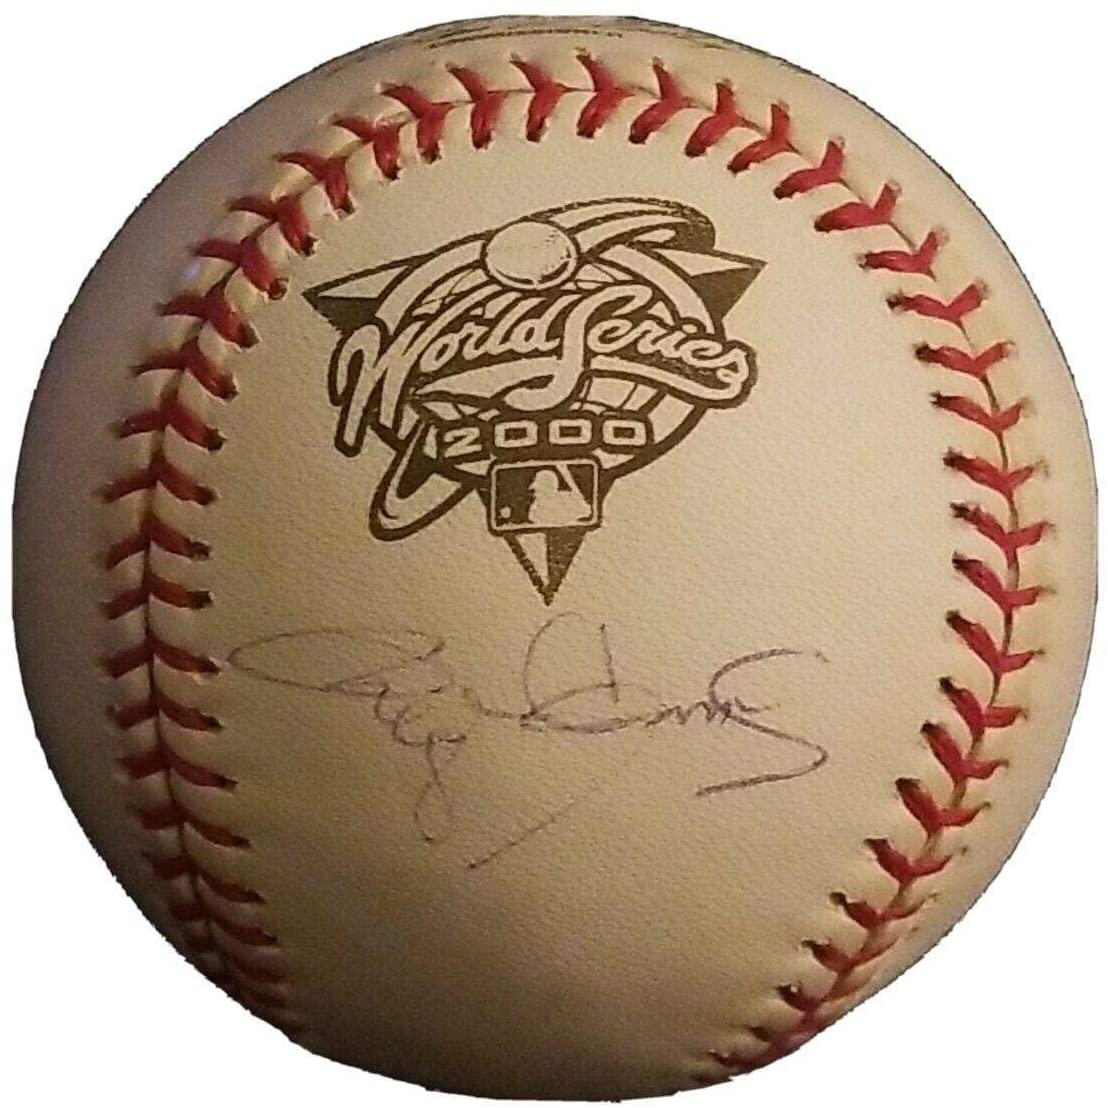 Autographed Roger Clemens Baseball - Legend Genuine Authentic - Steiner Sports Certified - Autographed Baseballs